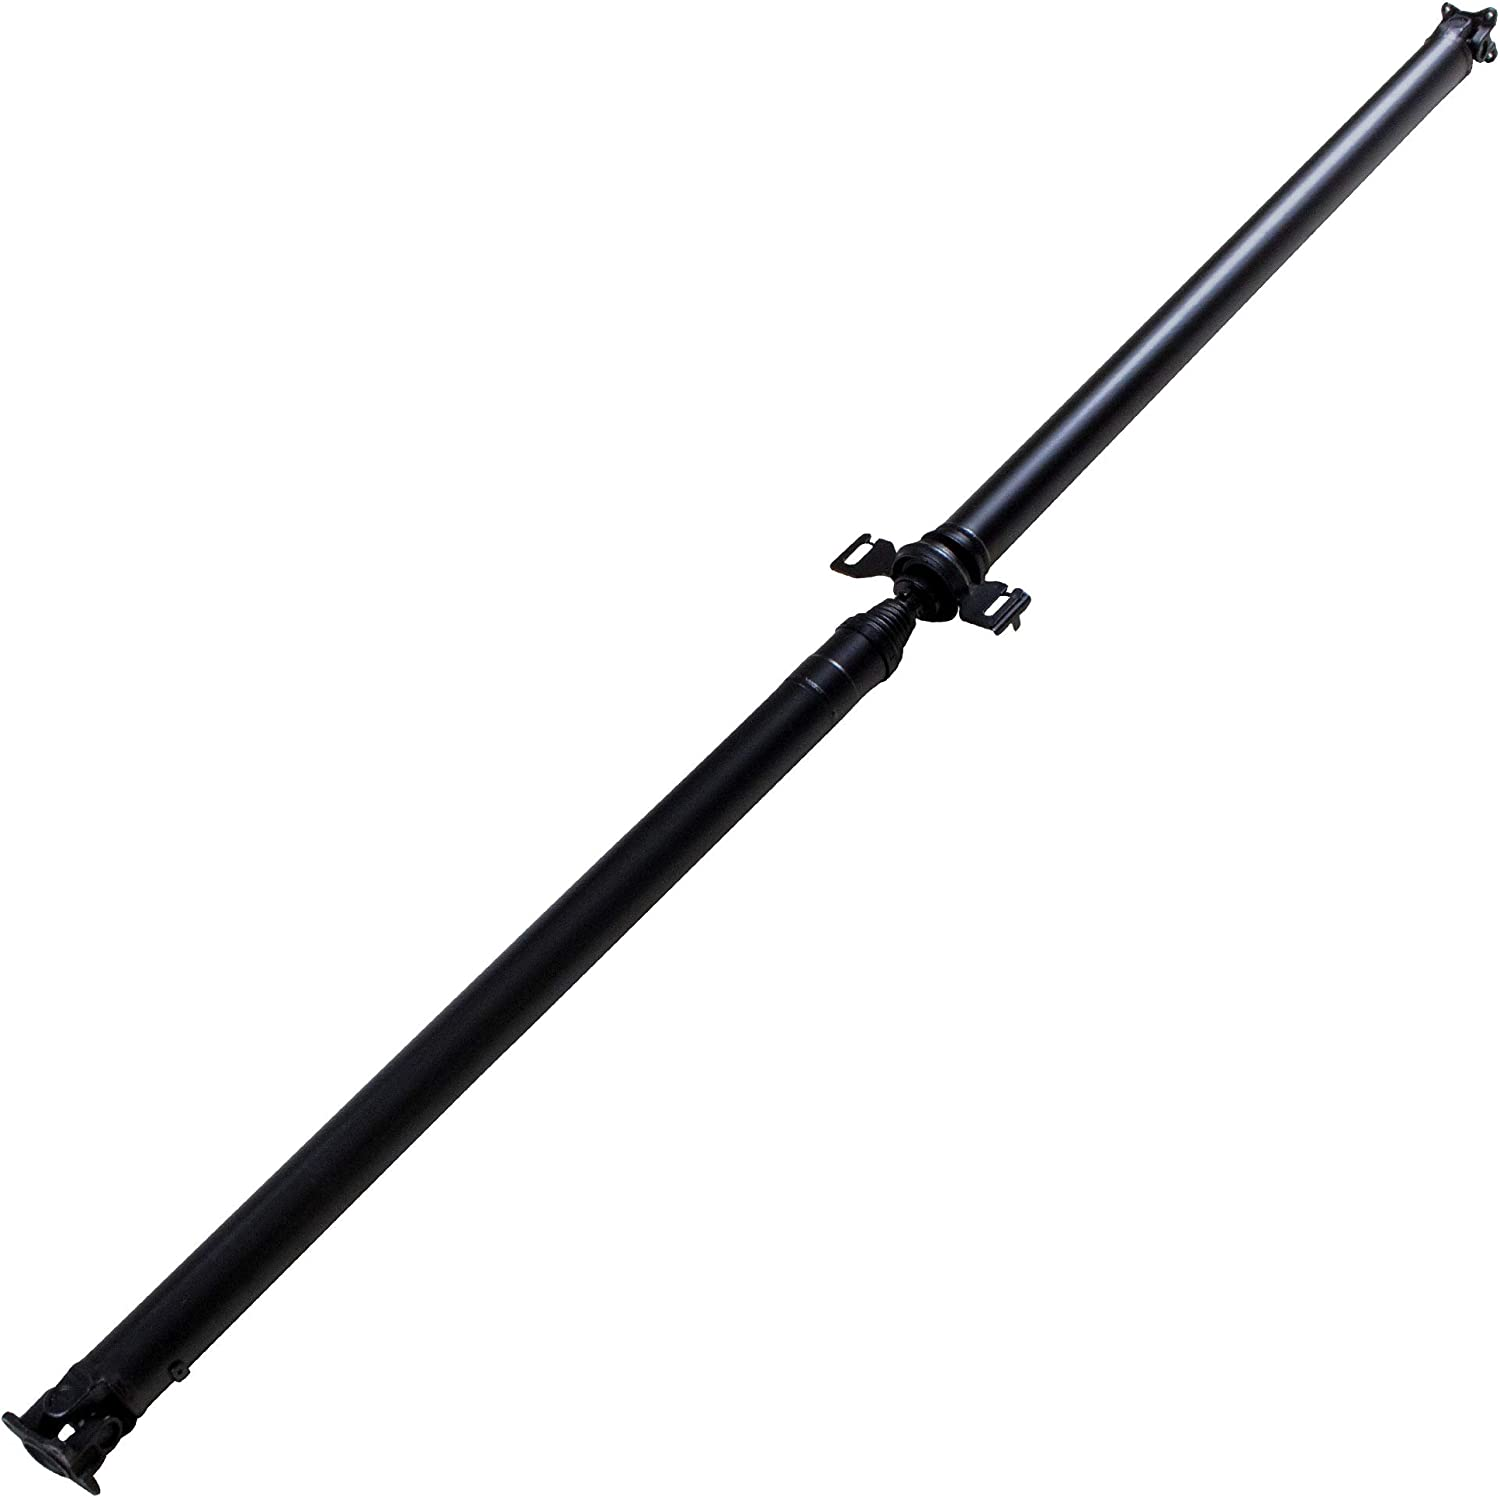 BOXI Rear Driveshaft Propeller Drive Shaft Assembly for 2006 2007 2008 2009 2010 2011 2012 2013 TOYOTA RAV4 AWD Replaces 37100-42090 3710042090